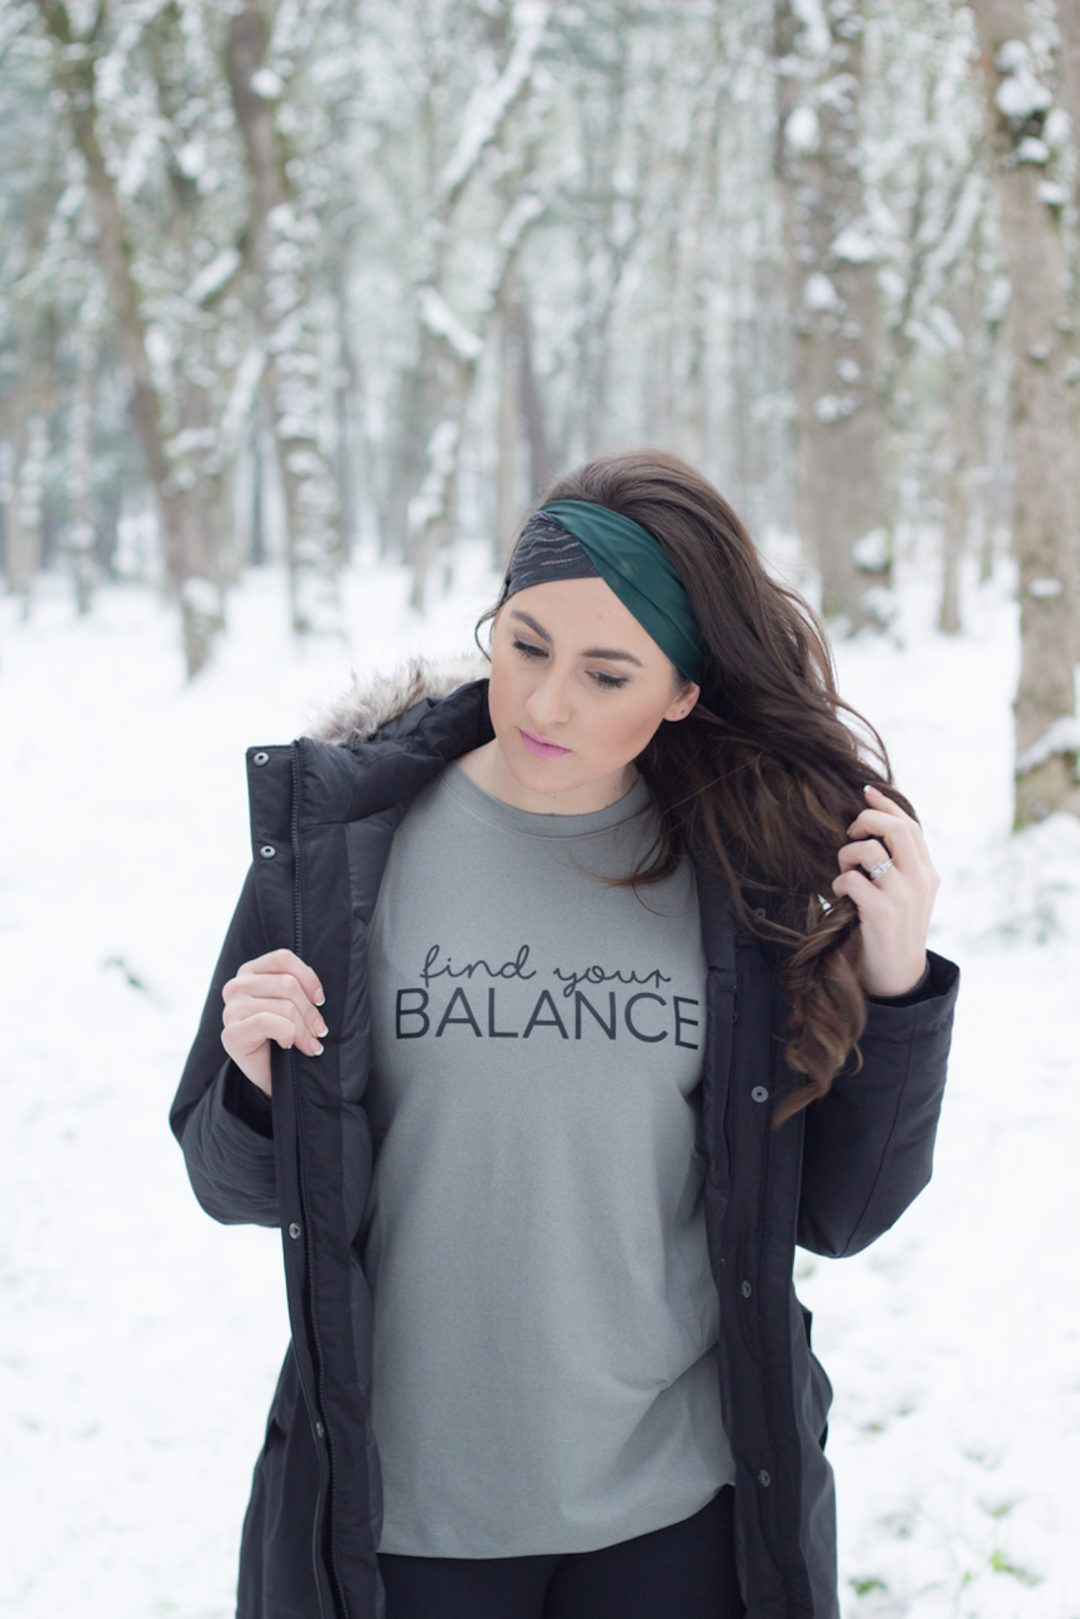 Walking is the best exercise, especially in these amazing workout headbands and tank.